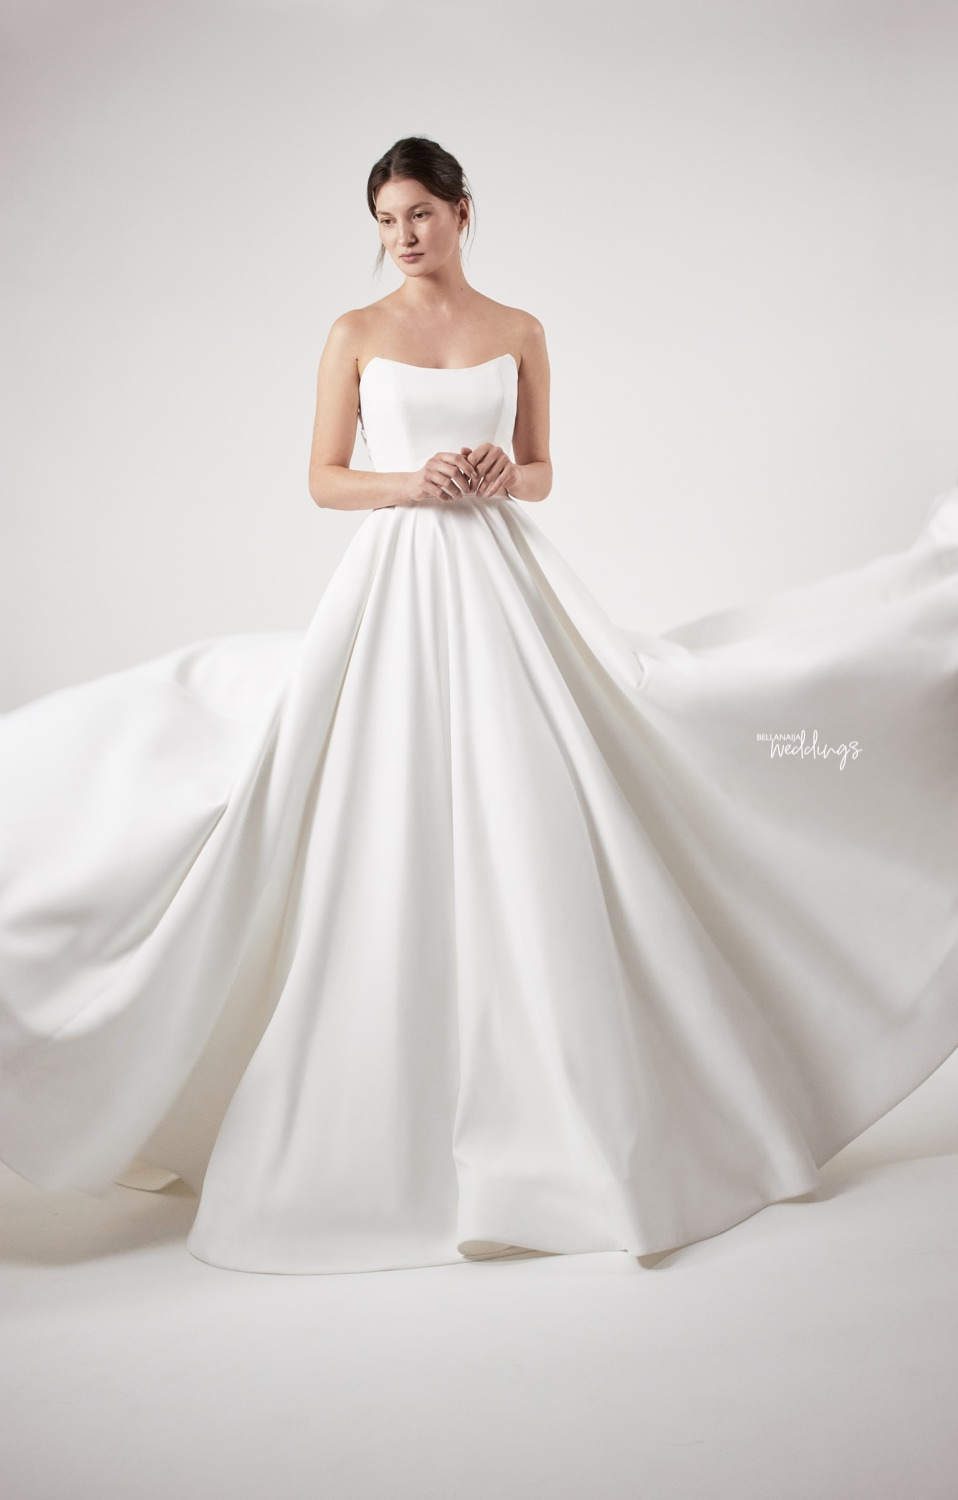 The 2021 Alyne Collection by Rita Vinieris is for the Comfy Bride